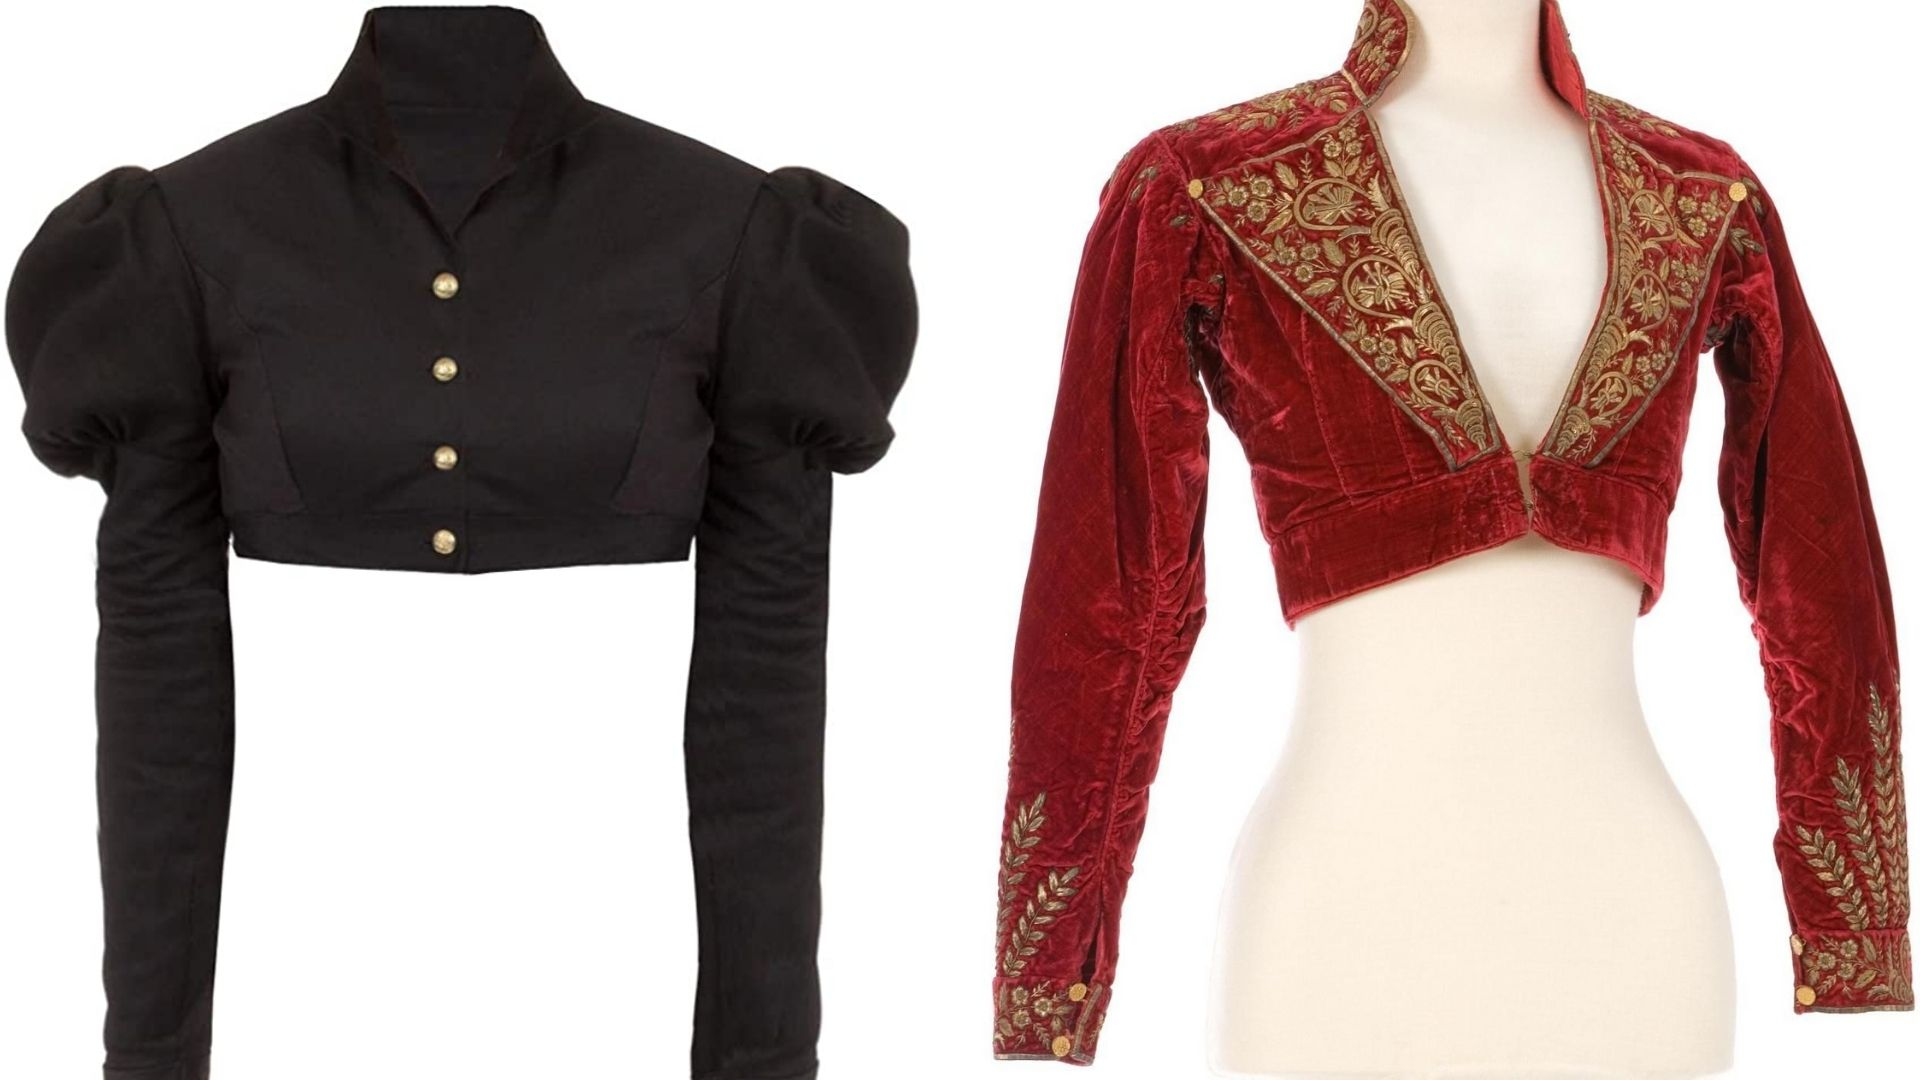 Black Spencer Jacket and Red Spencer Jacket with golden embroidery side by side.